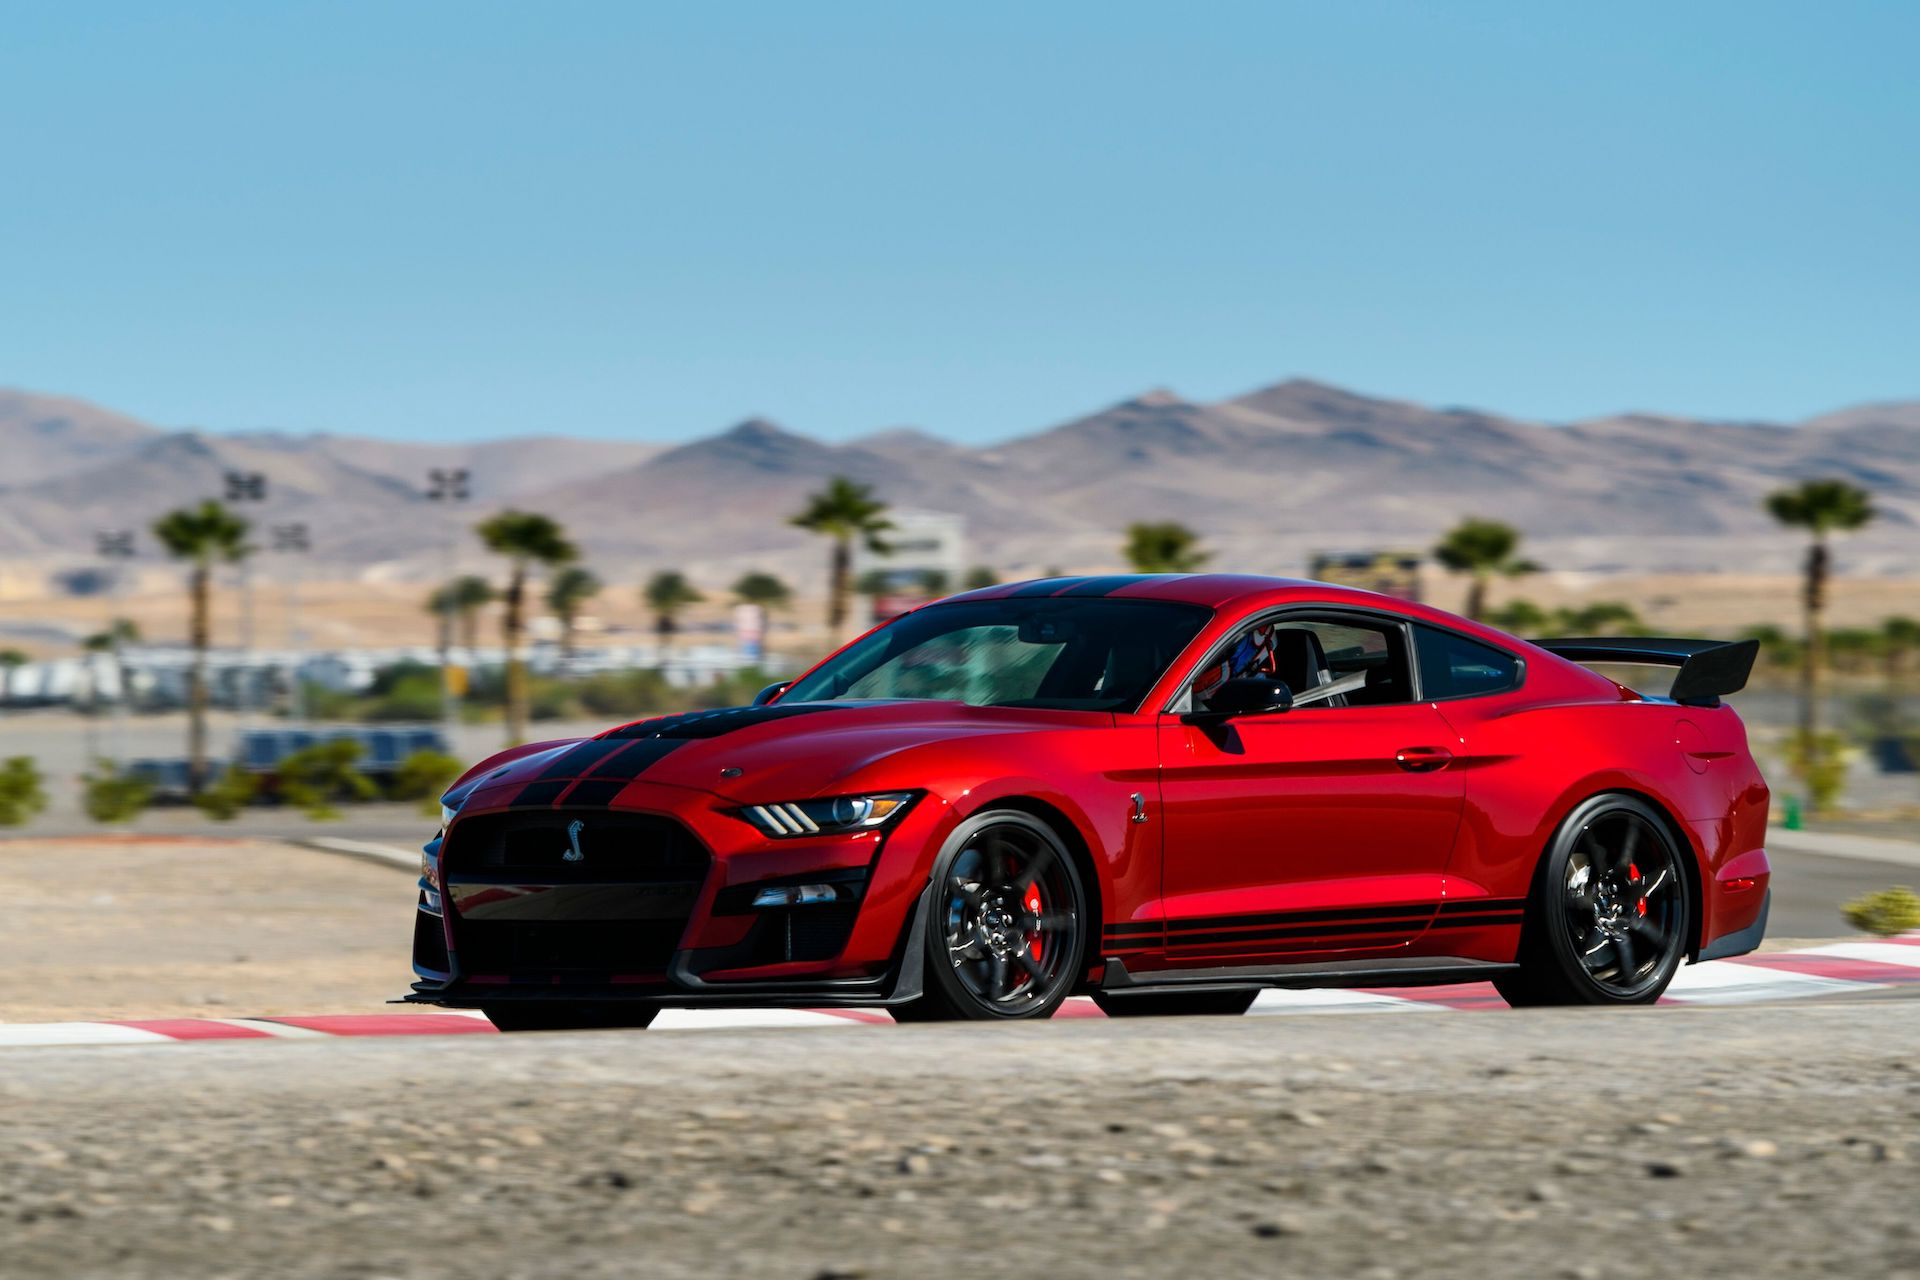 Ford Mustang Mach 1: 454bhp special edition confirmed for